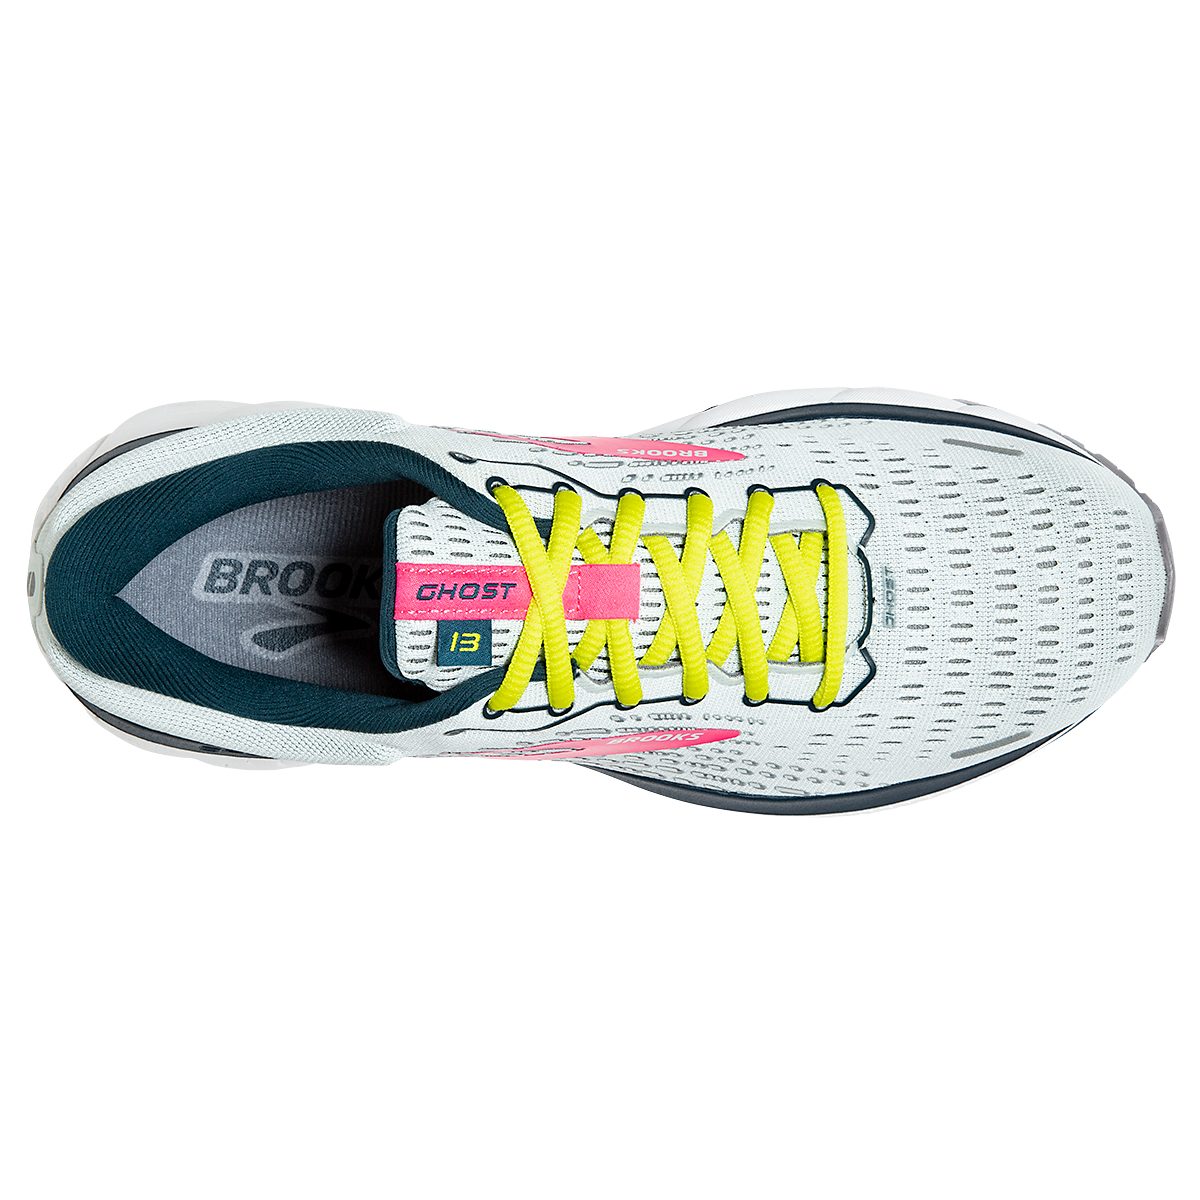 Women's Brooks Ghost 13 Running Shoes - Color: Ice Flow/Pink/Pond - Size: 5 - Width: Regular, Ice Flow/Pink/Pond, large, image 4